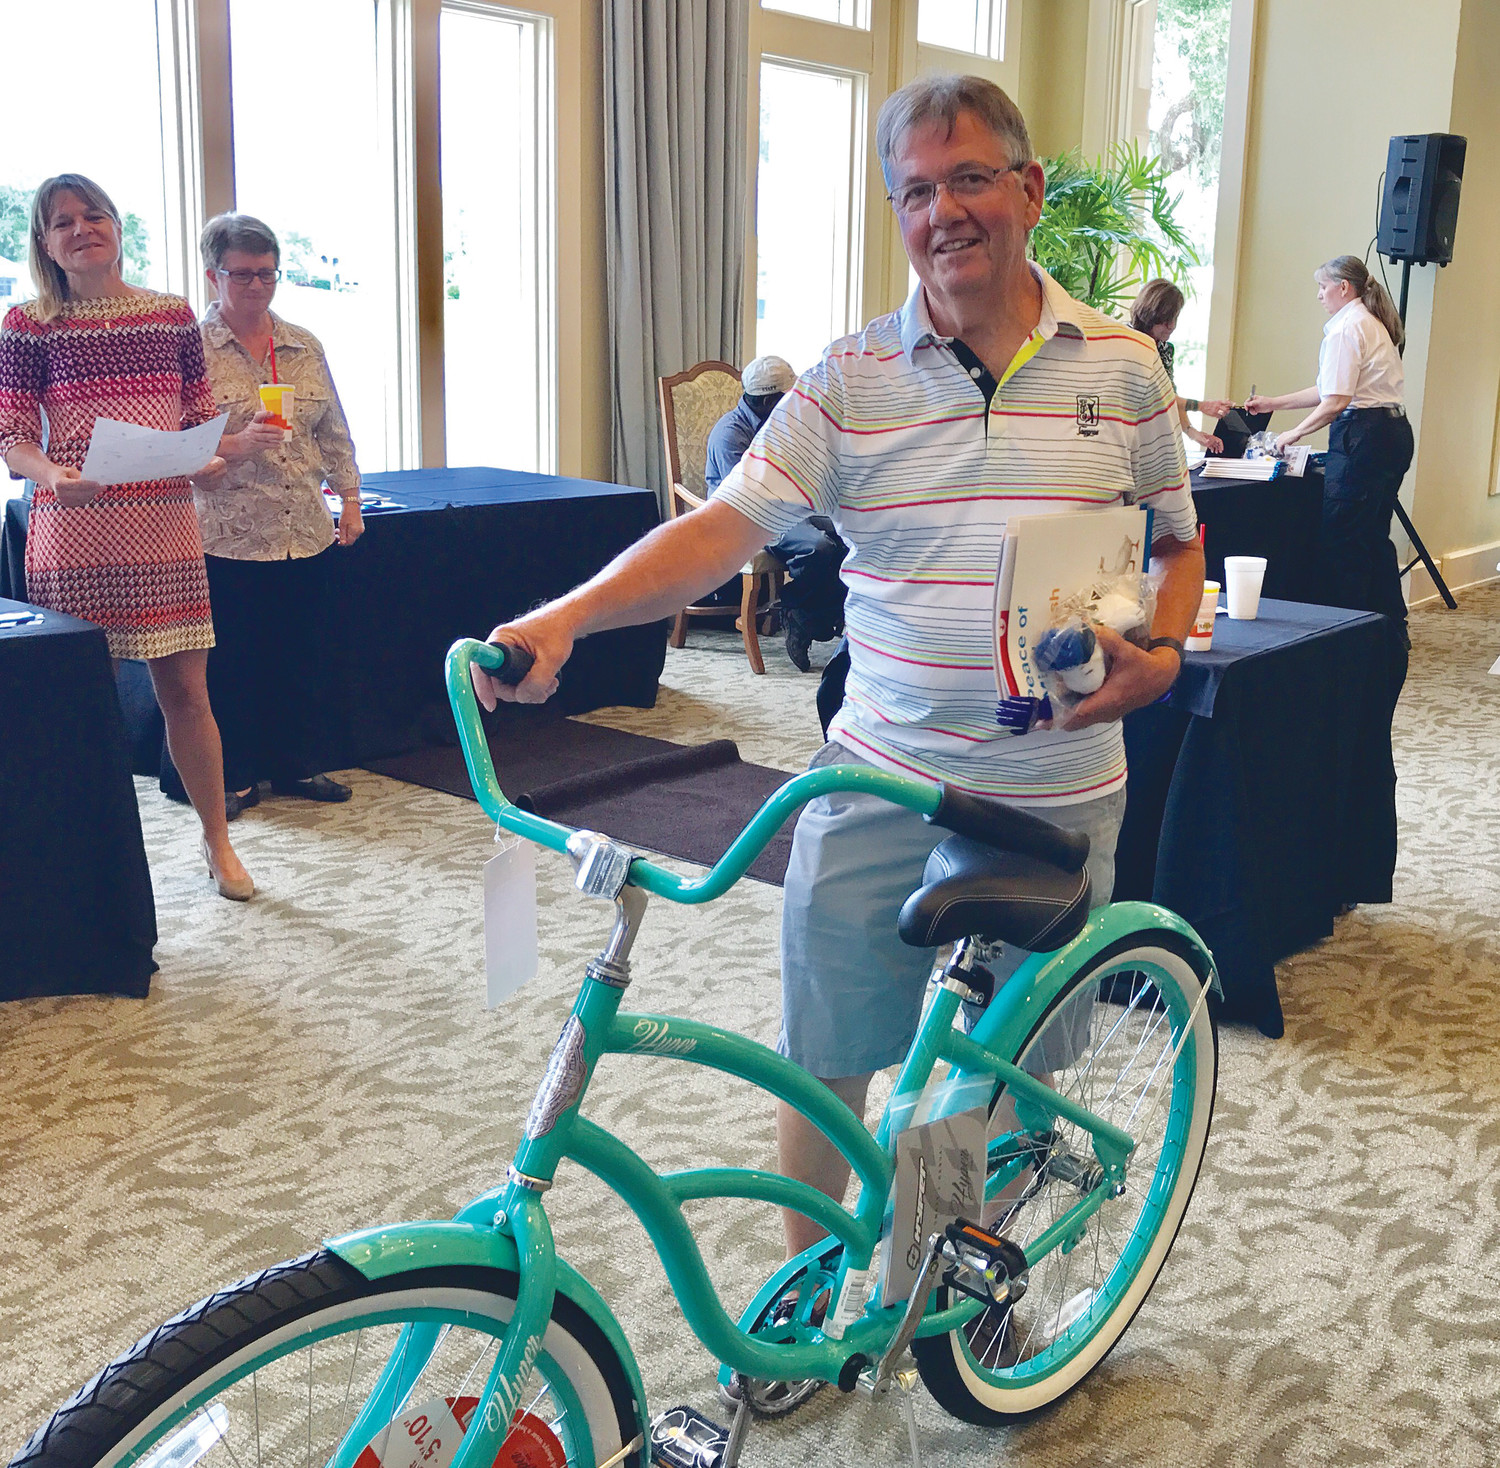 A Plantation at Ponte Vedra Beach employee wins the event's raffle prize, a beach bike donated by Hylant.